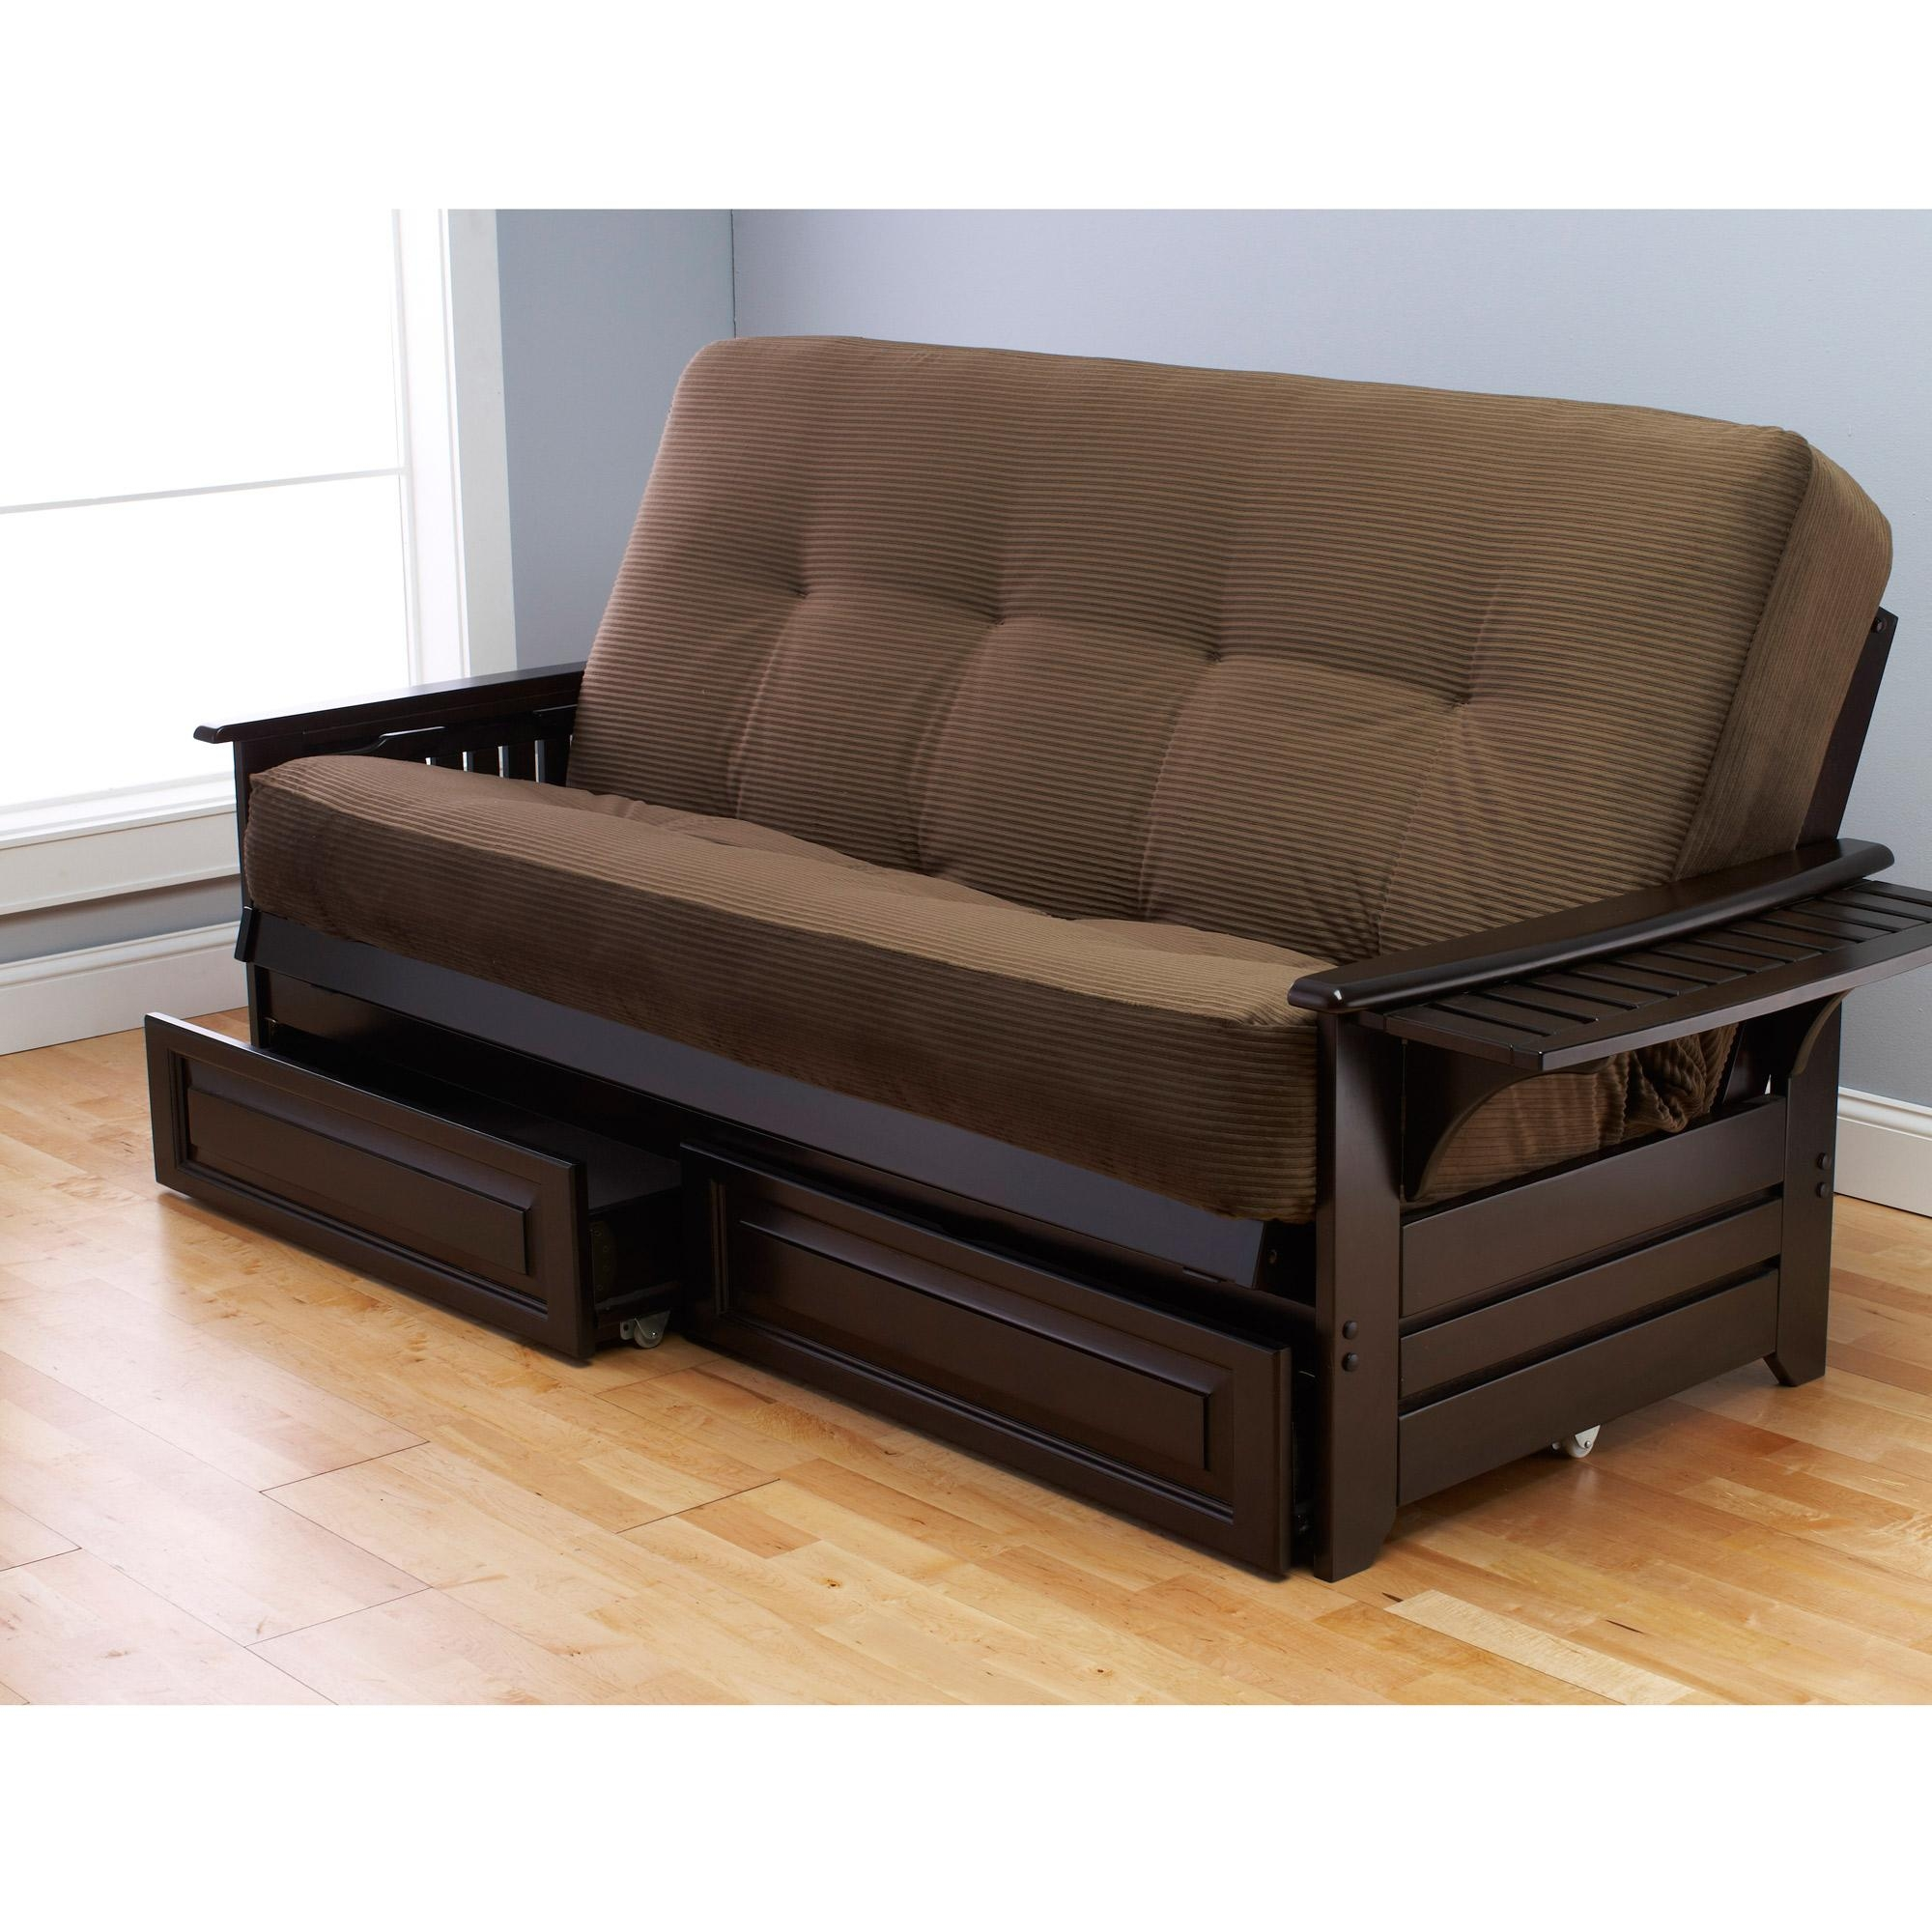 Good Cheap Sofa Beds | Centerfieldbar Throughout Cushion Sofa Beds (Image 8 of 23)